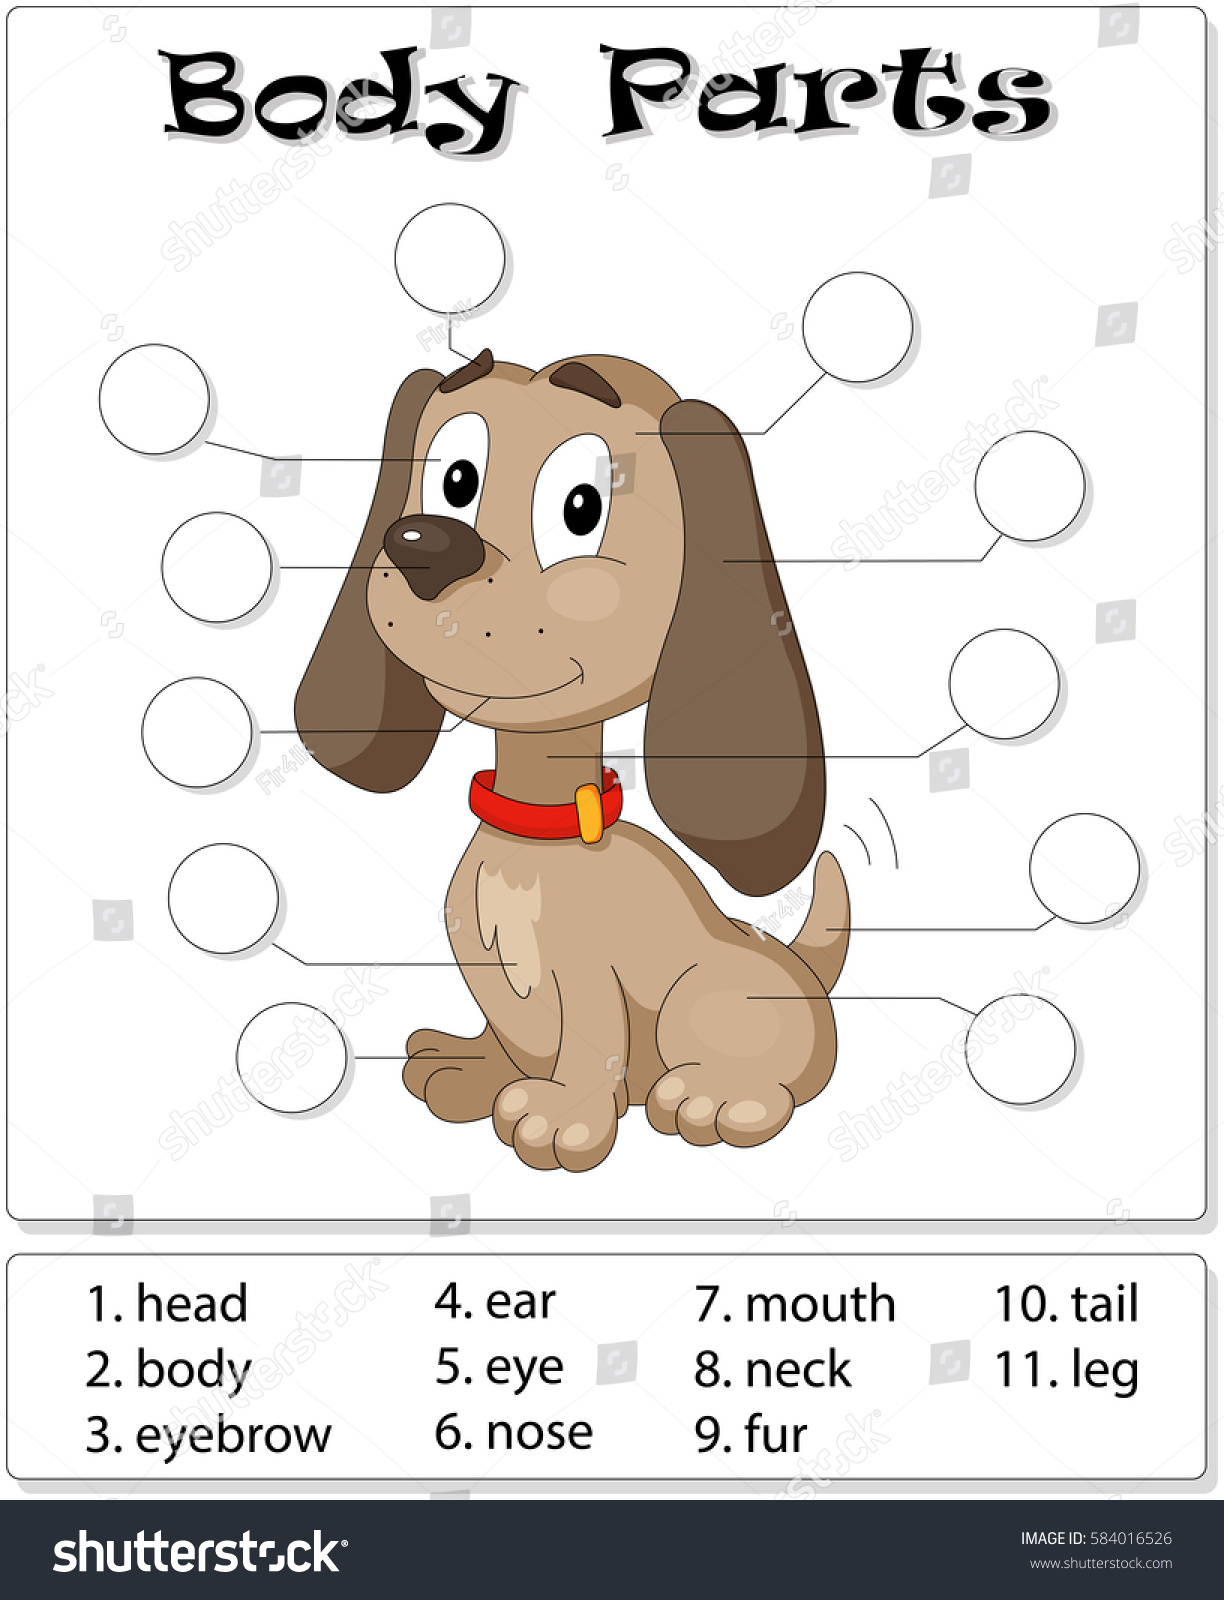 Dog Body Parts Animal Anatomy English Stock Vektorgrafik Lizenzfrei